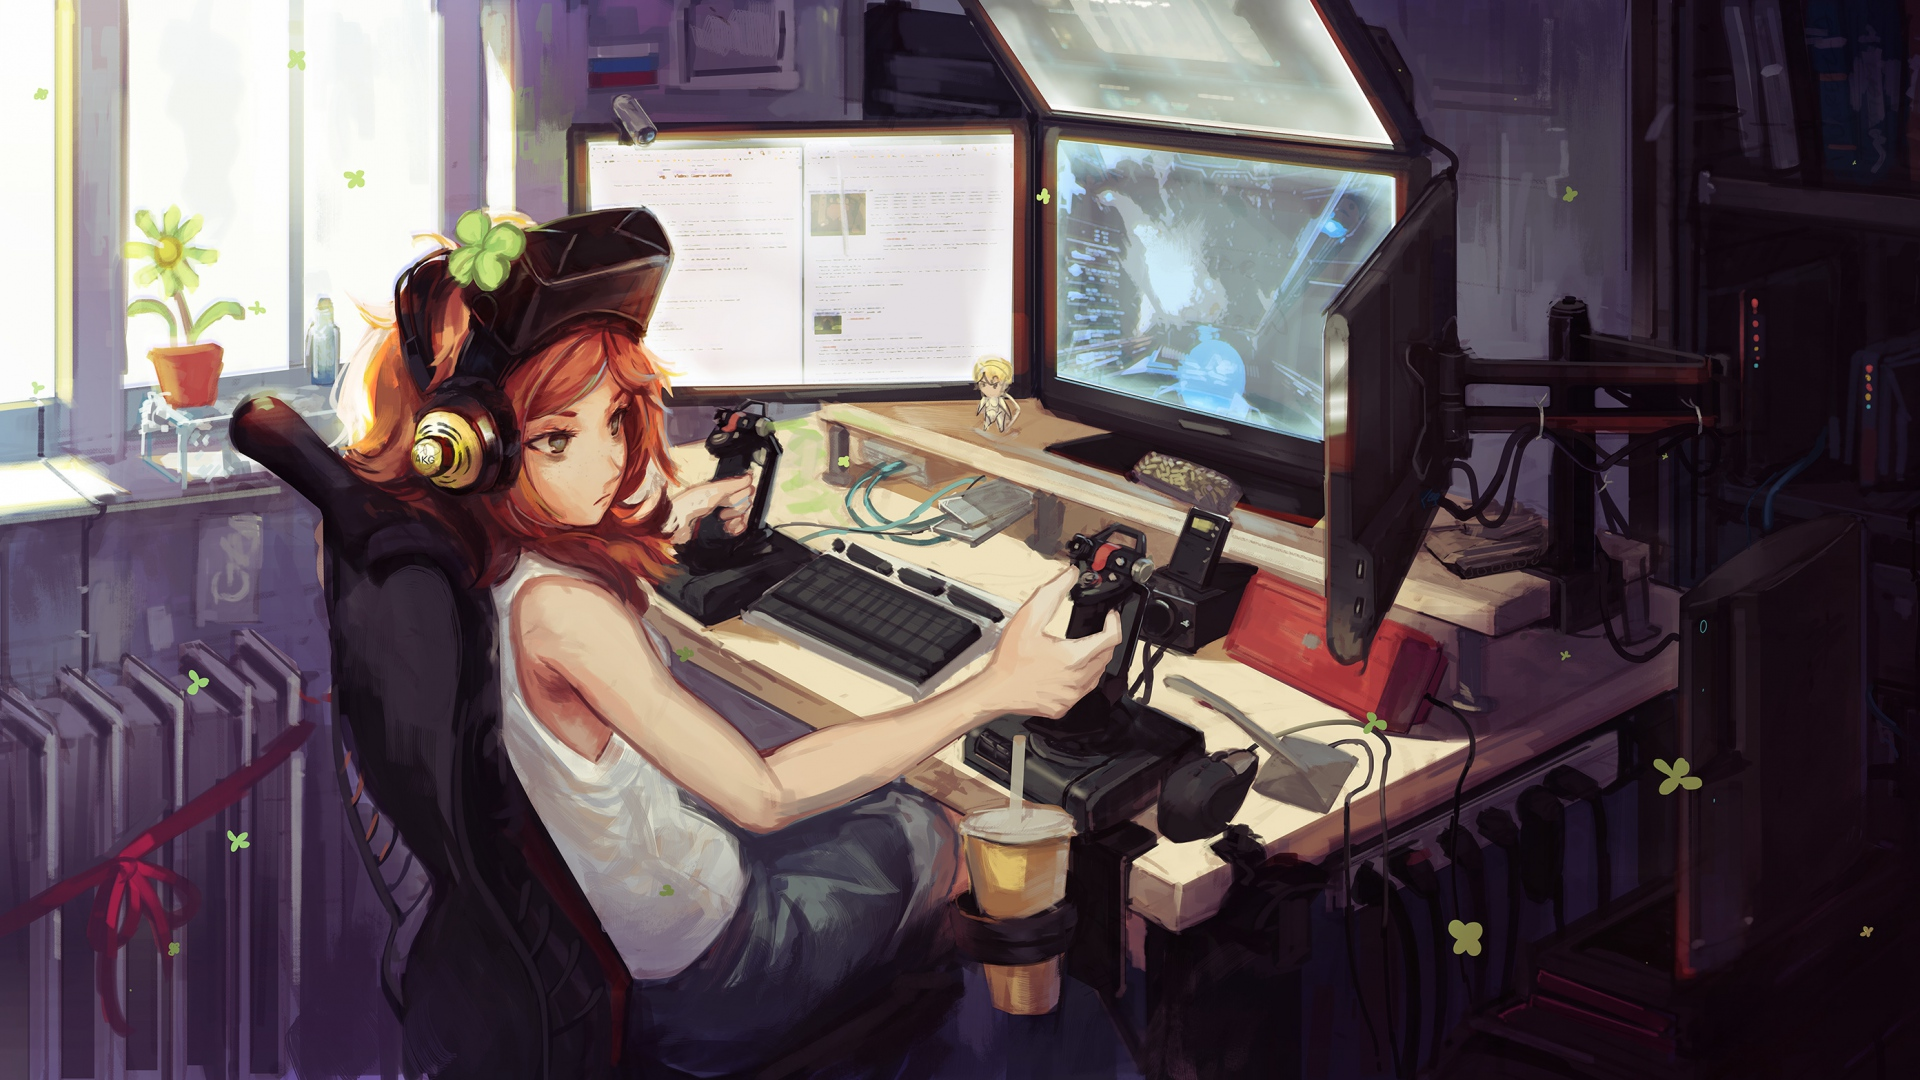 Gamer HD Wallpapers